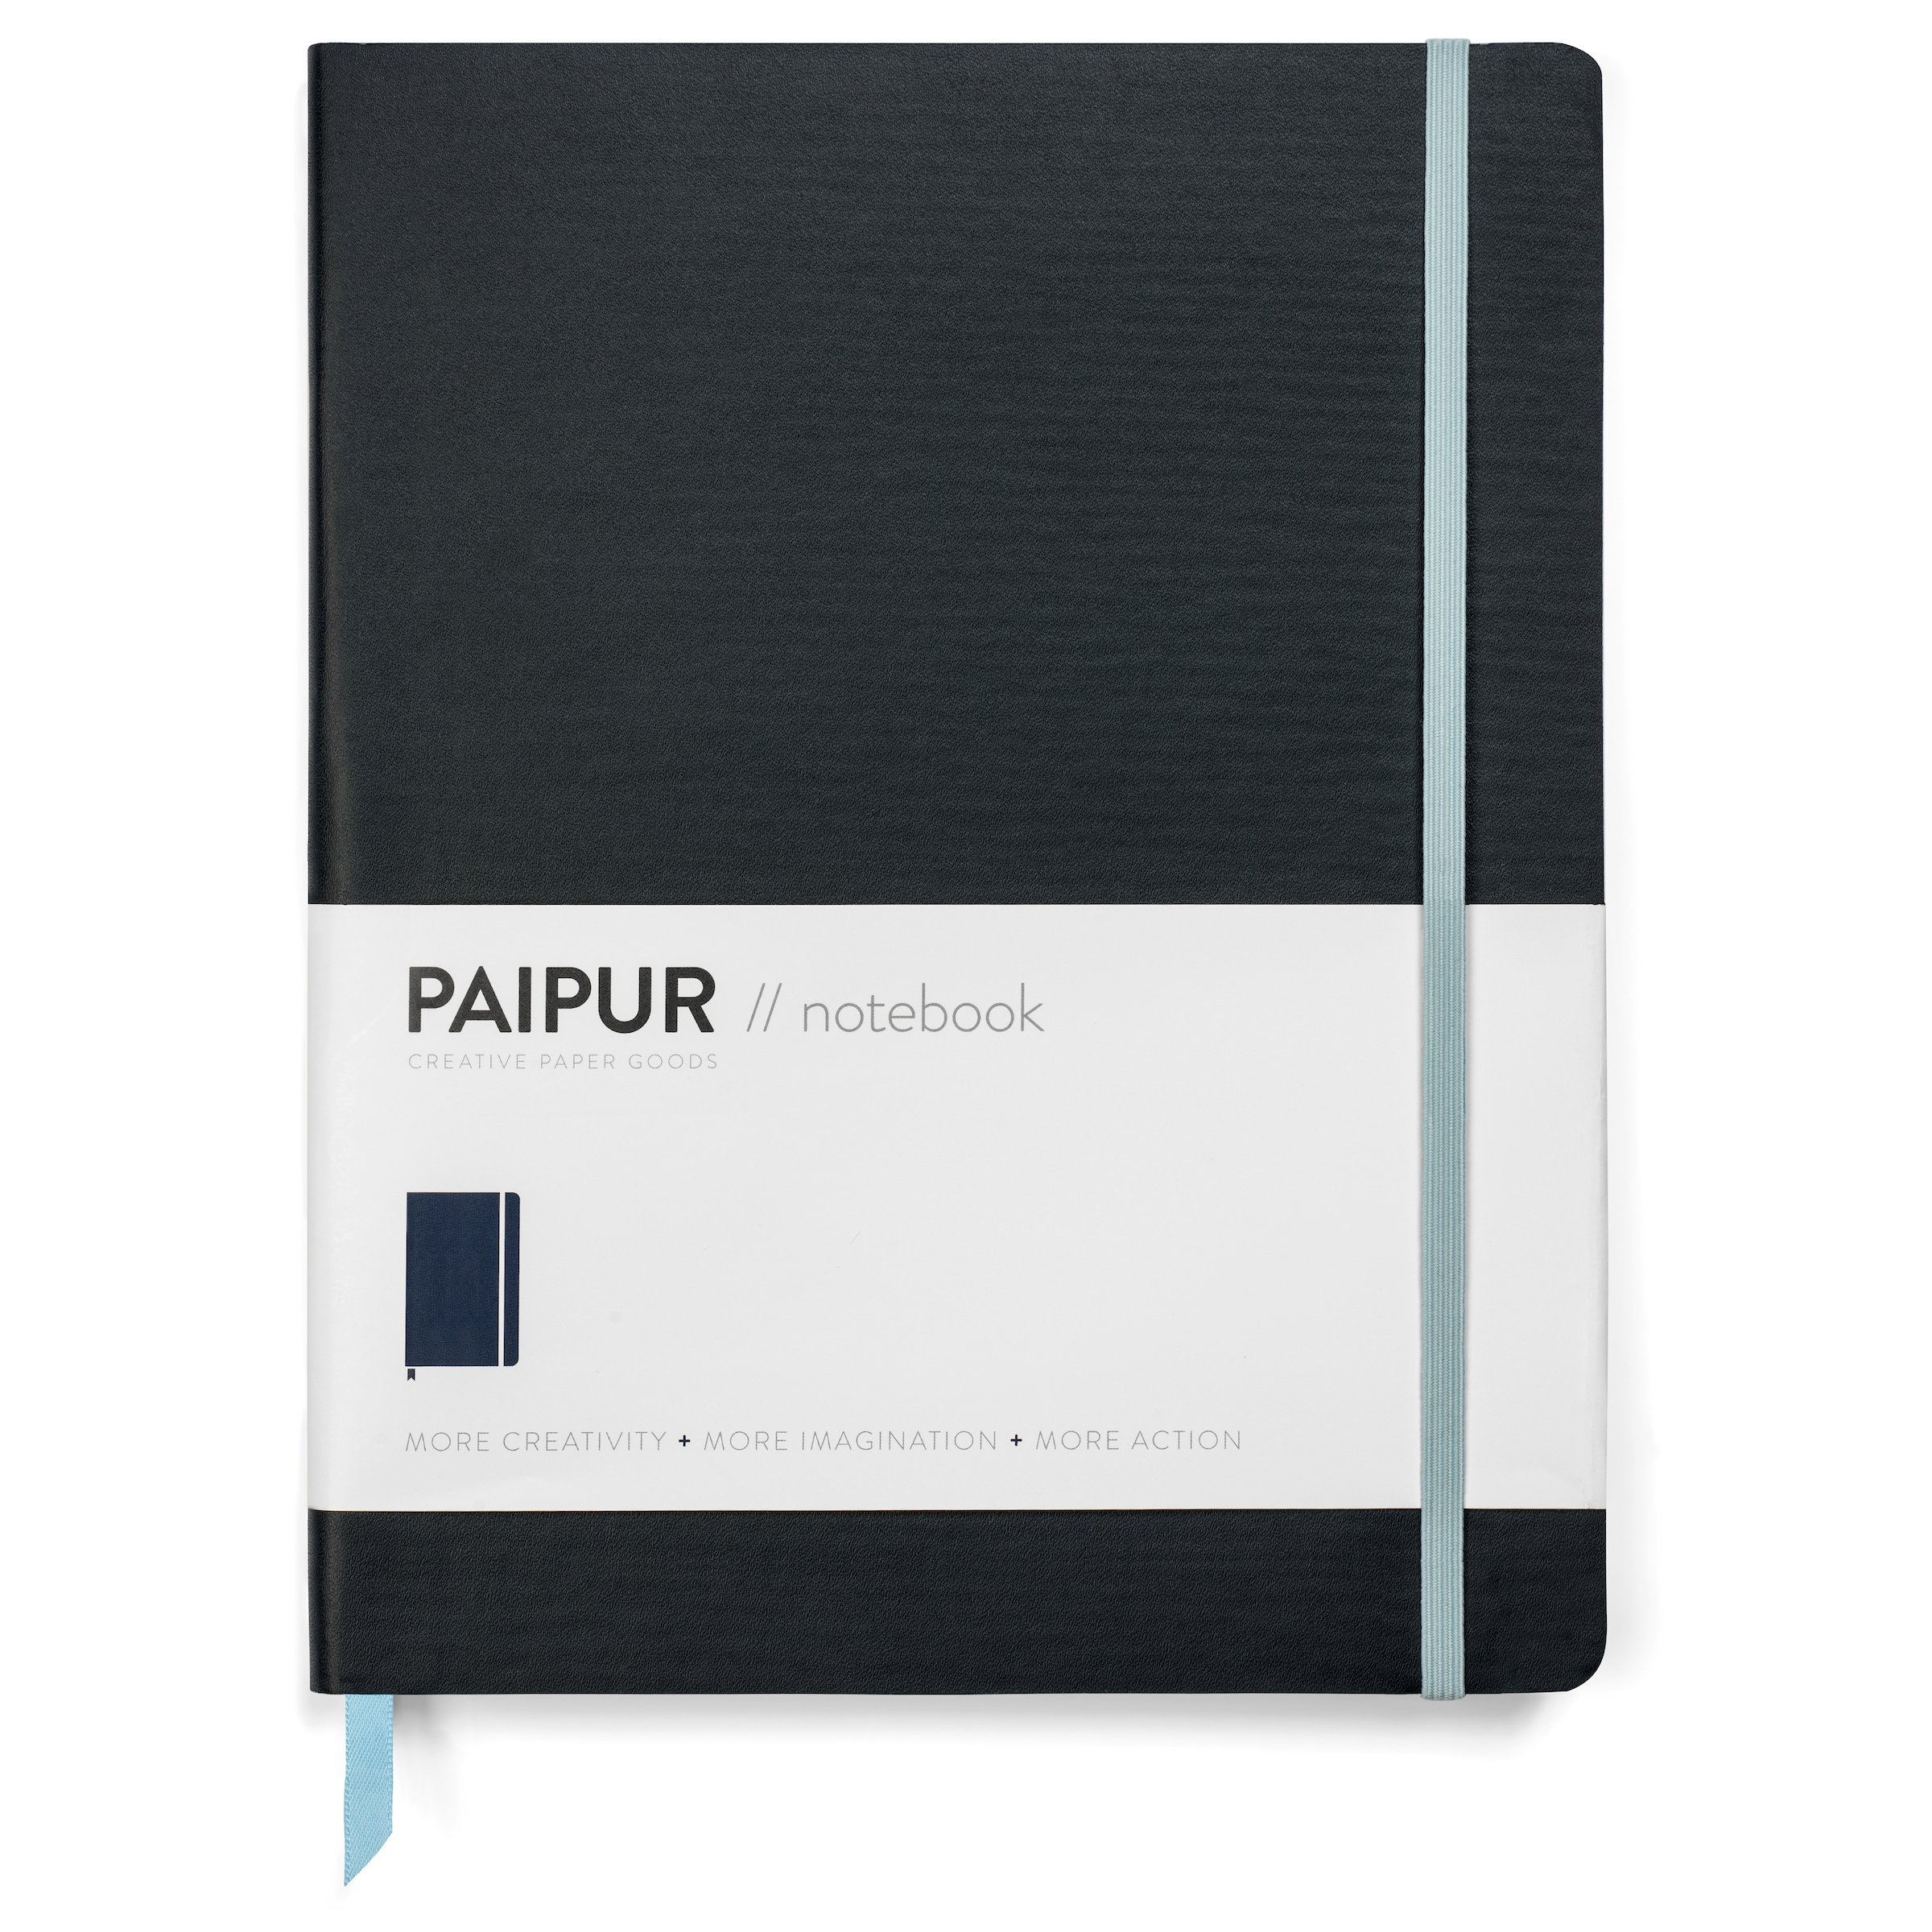 PAIPUR Notebook ~ Dotted Grid and Ruled HYBRID format ~ Color Series NARROW 0.24'' Spacing ~ LARGE 9.75'' x 7.5'' Size Journal ~ Classic Style Softcover ~ Luxe 100GSM Paper for All Pens with No Bleed by PAIPUR